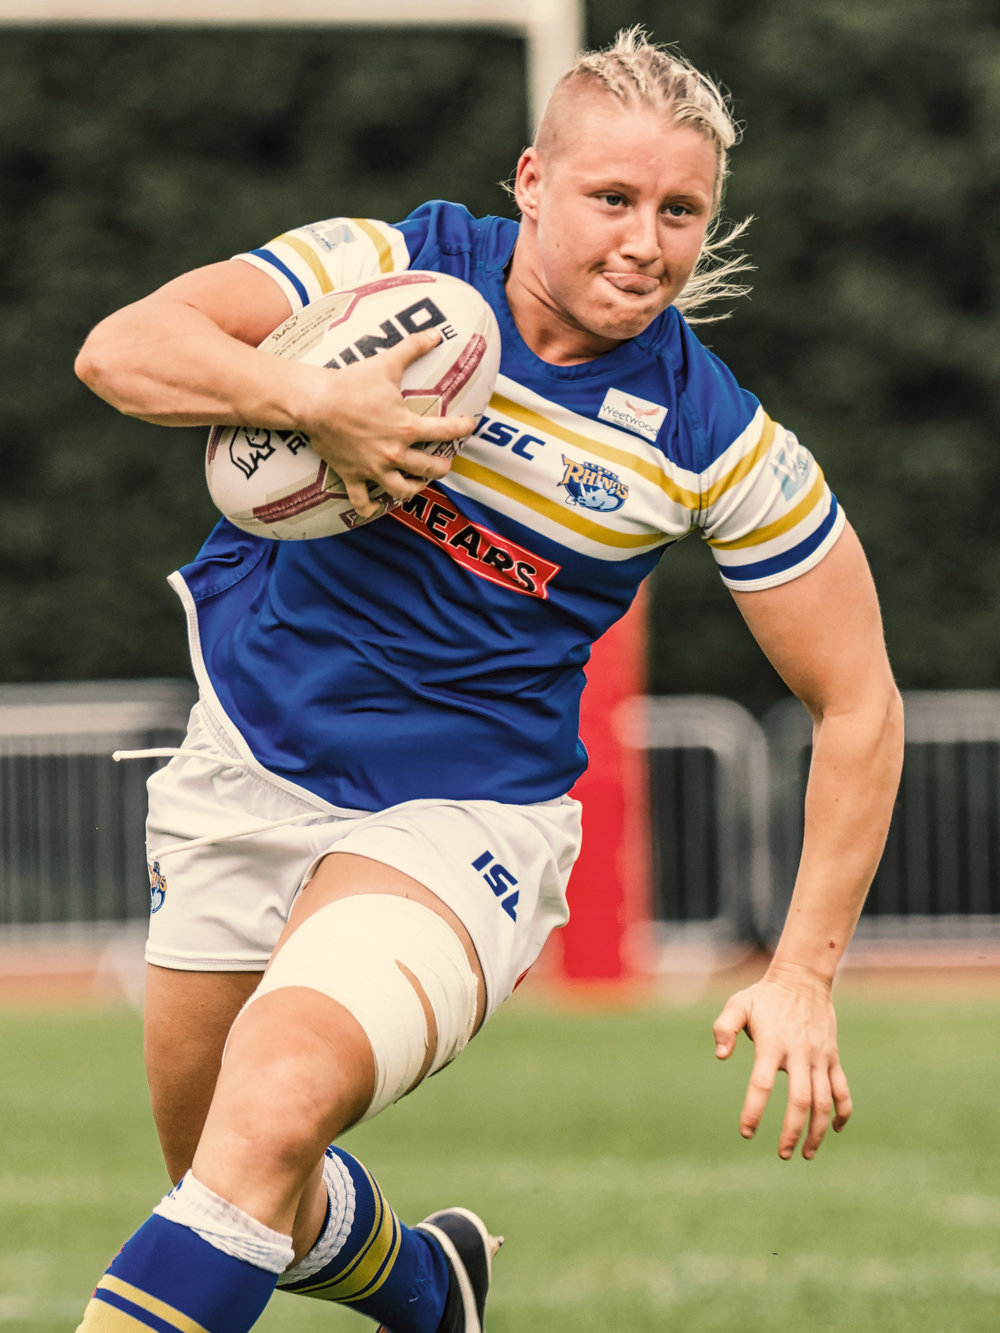 Charlotte Booth, a try scoring run